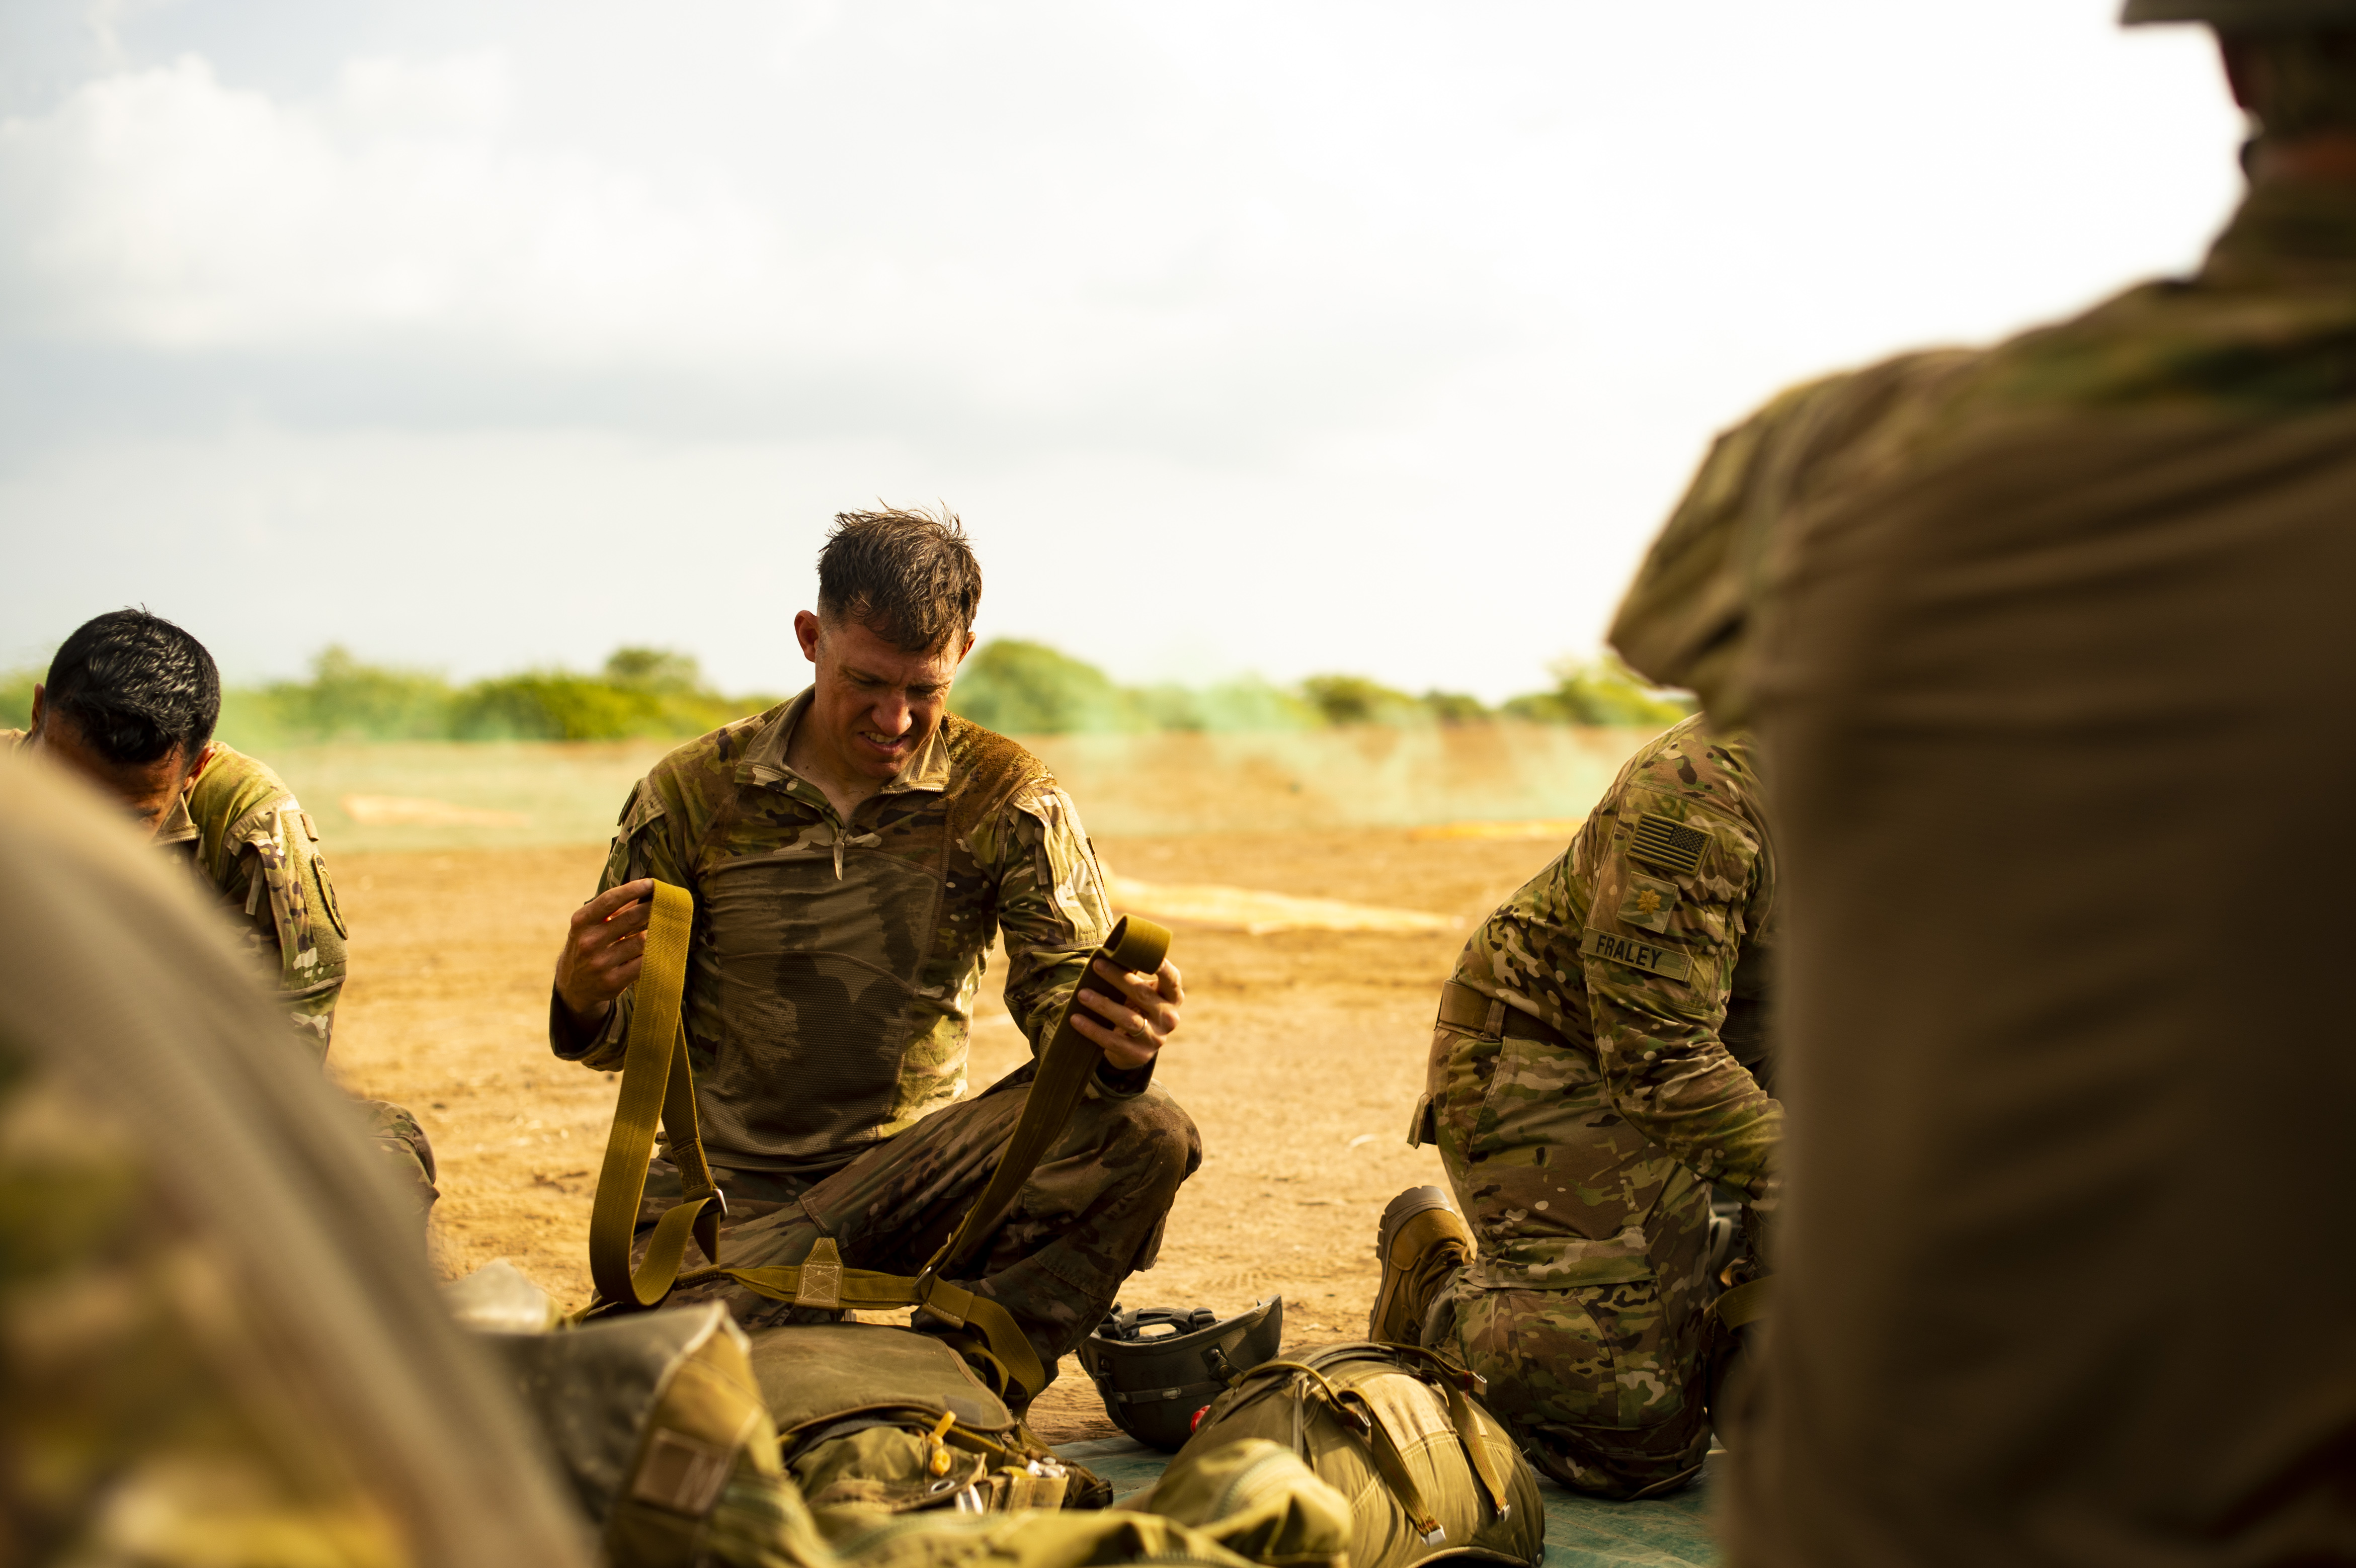 U.S. Army Capt. Mark Olving, team leader, Civil Affairs Team 305, 404th Civil Affairs battalion, packs his parachute bag after a static line jump outside Djibouti City, Djibouti, Oct. 1, 2018. American servicemembers and coalition partners jumped together to celebrate the Feast Day of Archangel Michael, the patron saint of paratroopers. (U.S. Air Force photo by Senior Airman Scott Jackson)